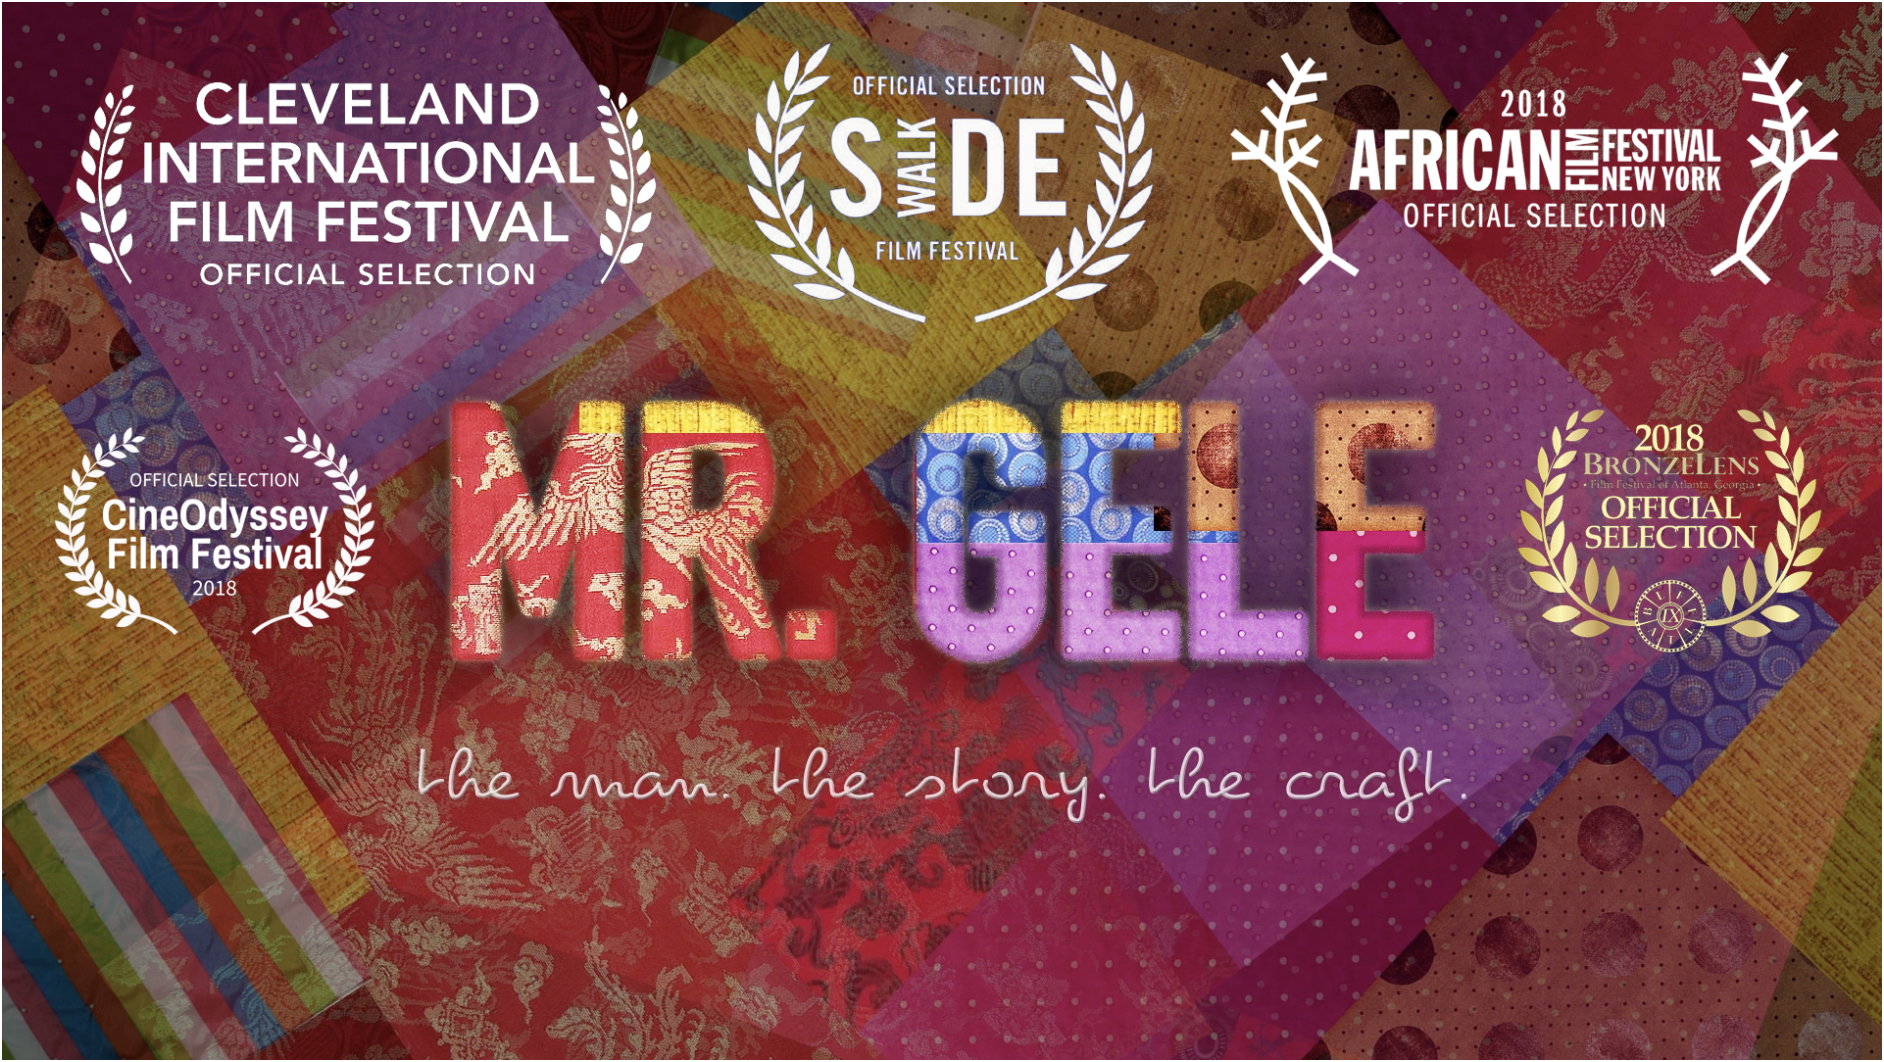 Mr. Gele: The Man, The Story, The Craft (2017) | Editor, Title Design